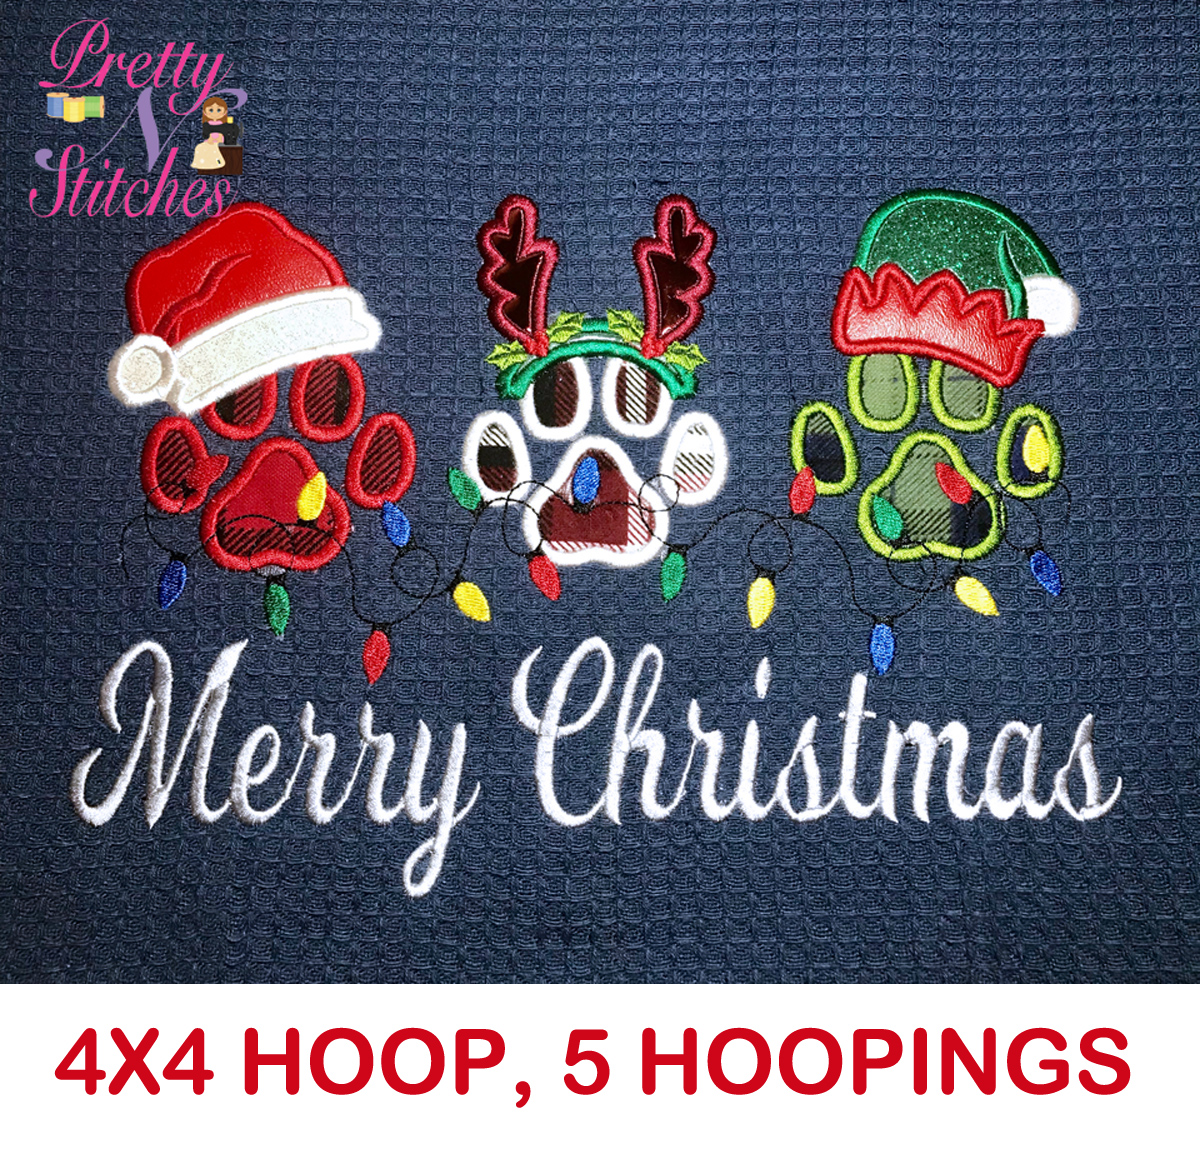 4X4 Paw Print Merry Christmas Applique Embroidery Design is for the 4X4 hoop, 5 hooping's, alignment markings to align each paw